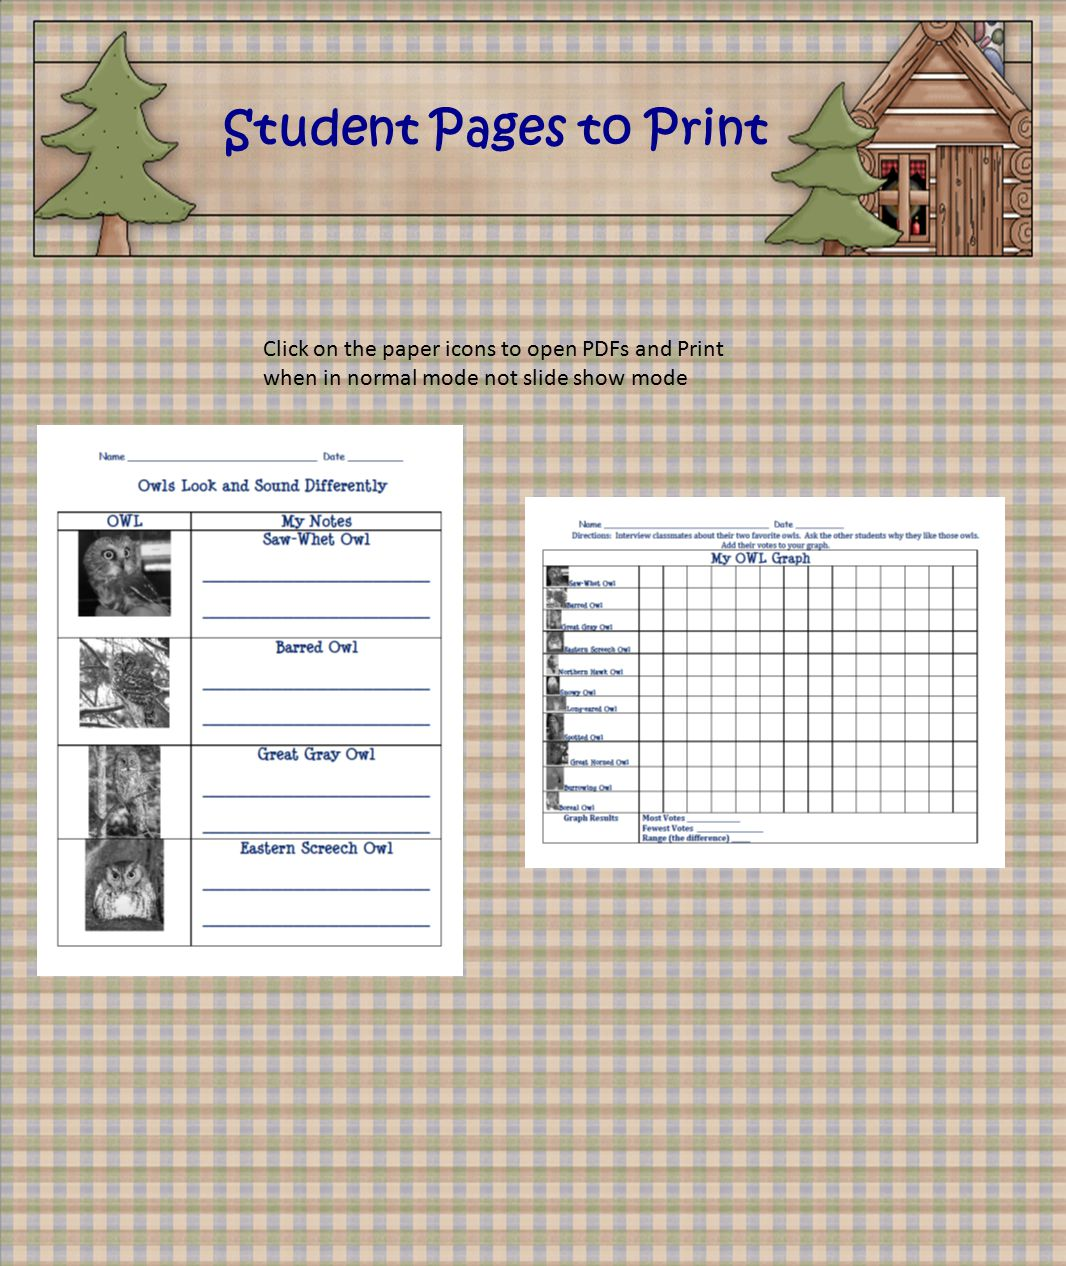 Student Pages to Print Click on the paper icons to open PDFs and Print when in normal mode not slide show mode